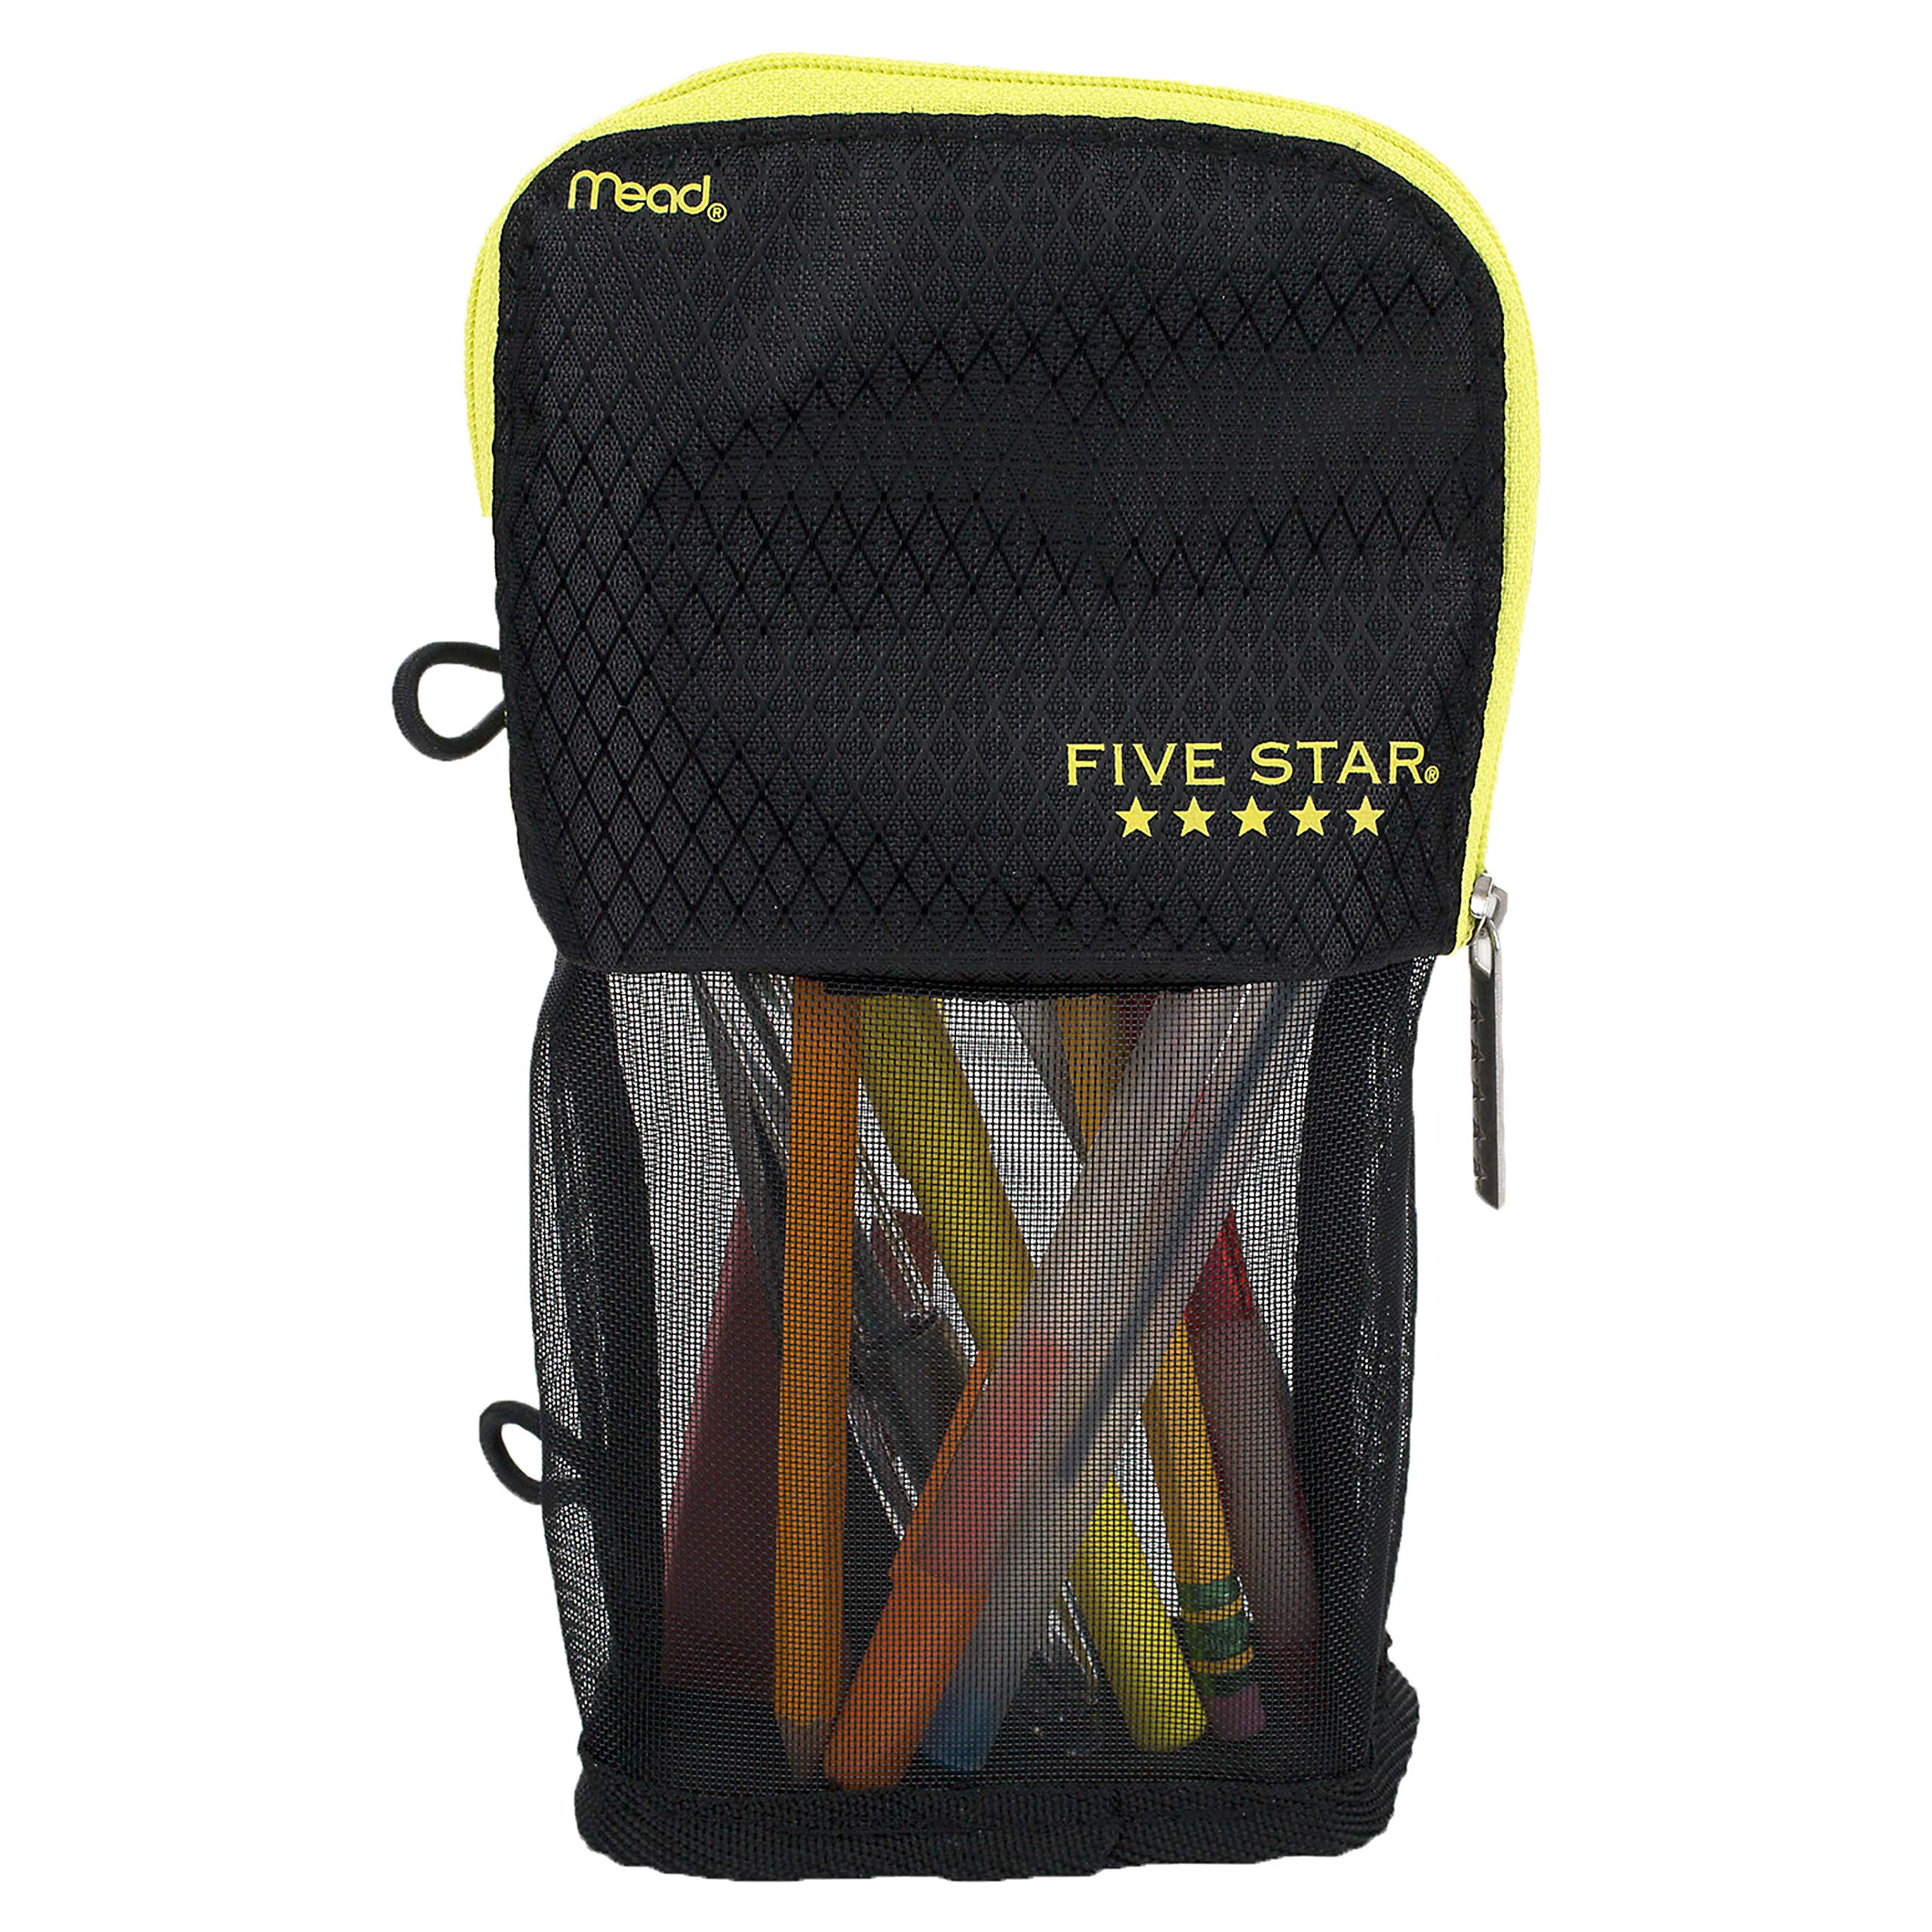 Five Star Stand N Store Pencil Pouch/Case, School Supplies - Black